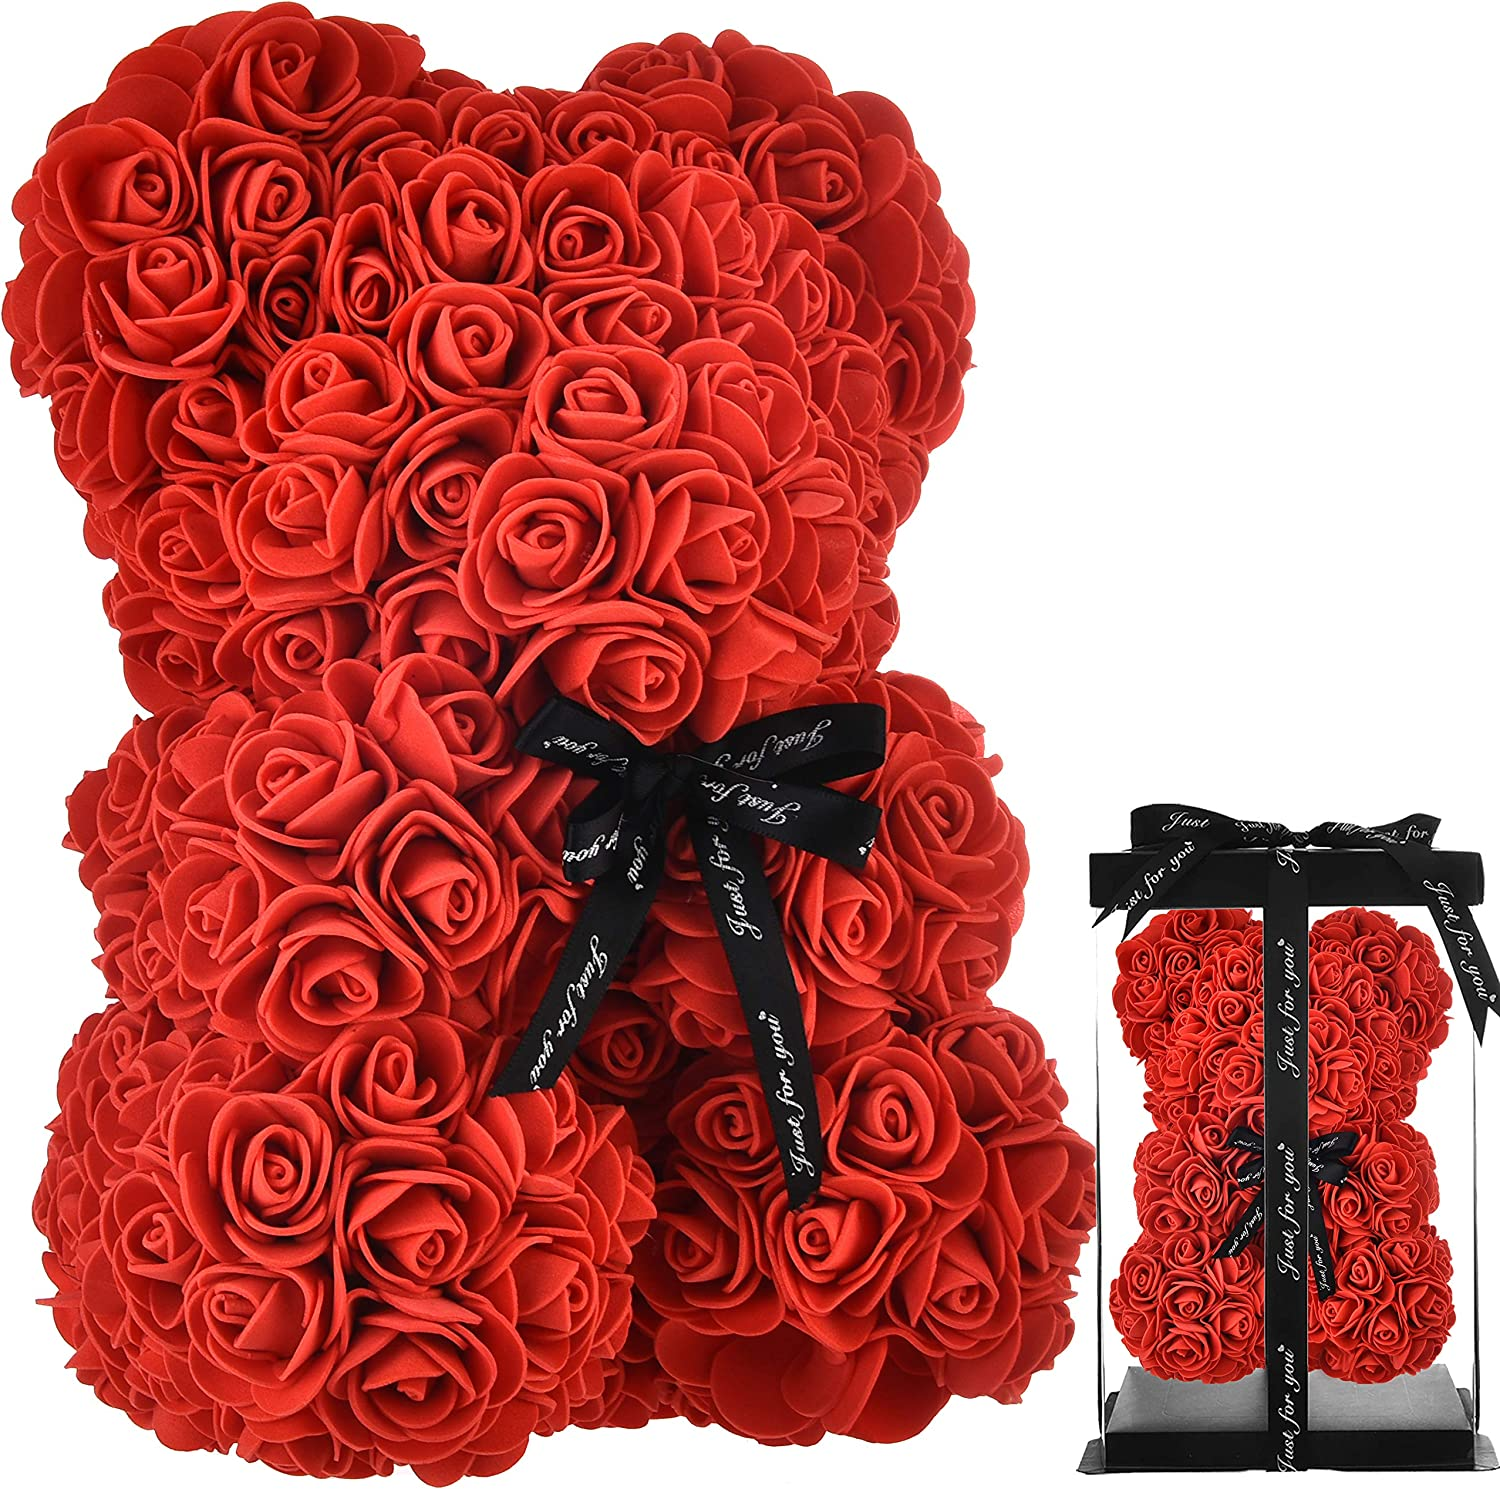 Rose Bear red Rose Teddy Bear women gifts for mom gifts birthday girlfriend gifts for her ,Teddy Bear flower Rose flowers bear for Anniversary Wedding Birthday Mothers Day Etc - w/Clear Gift Box (red)